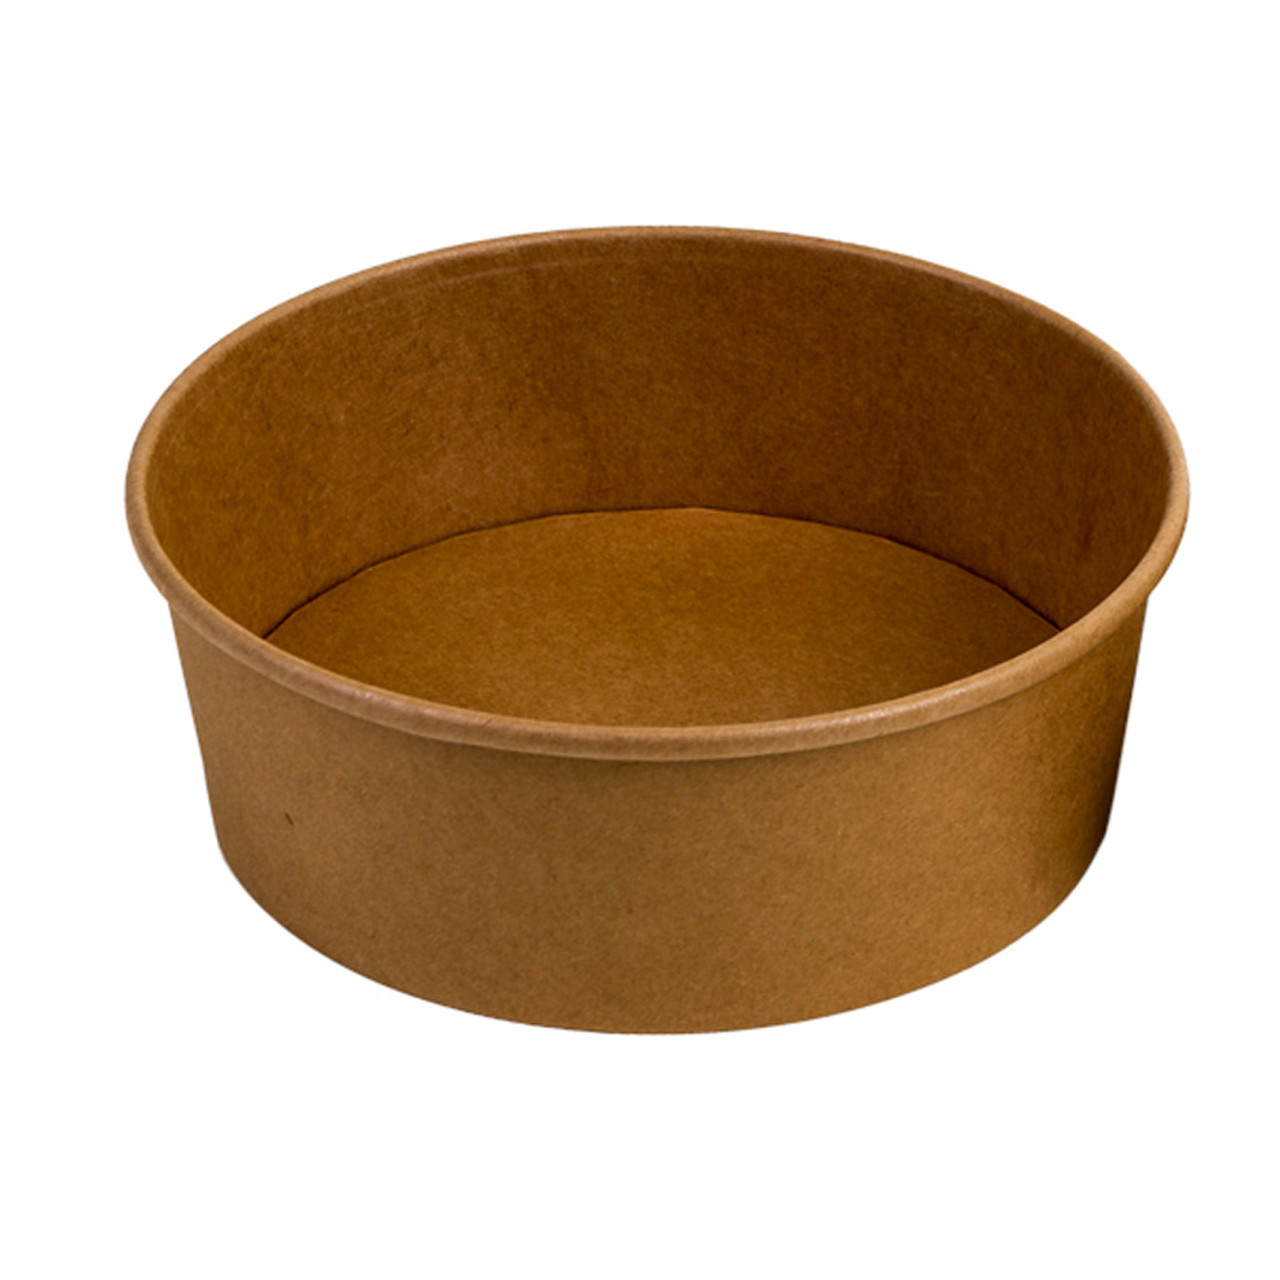 44oz Kraft Salad Bowl